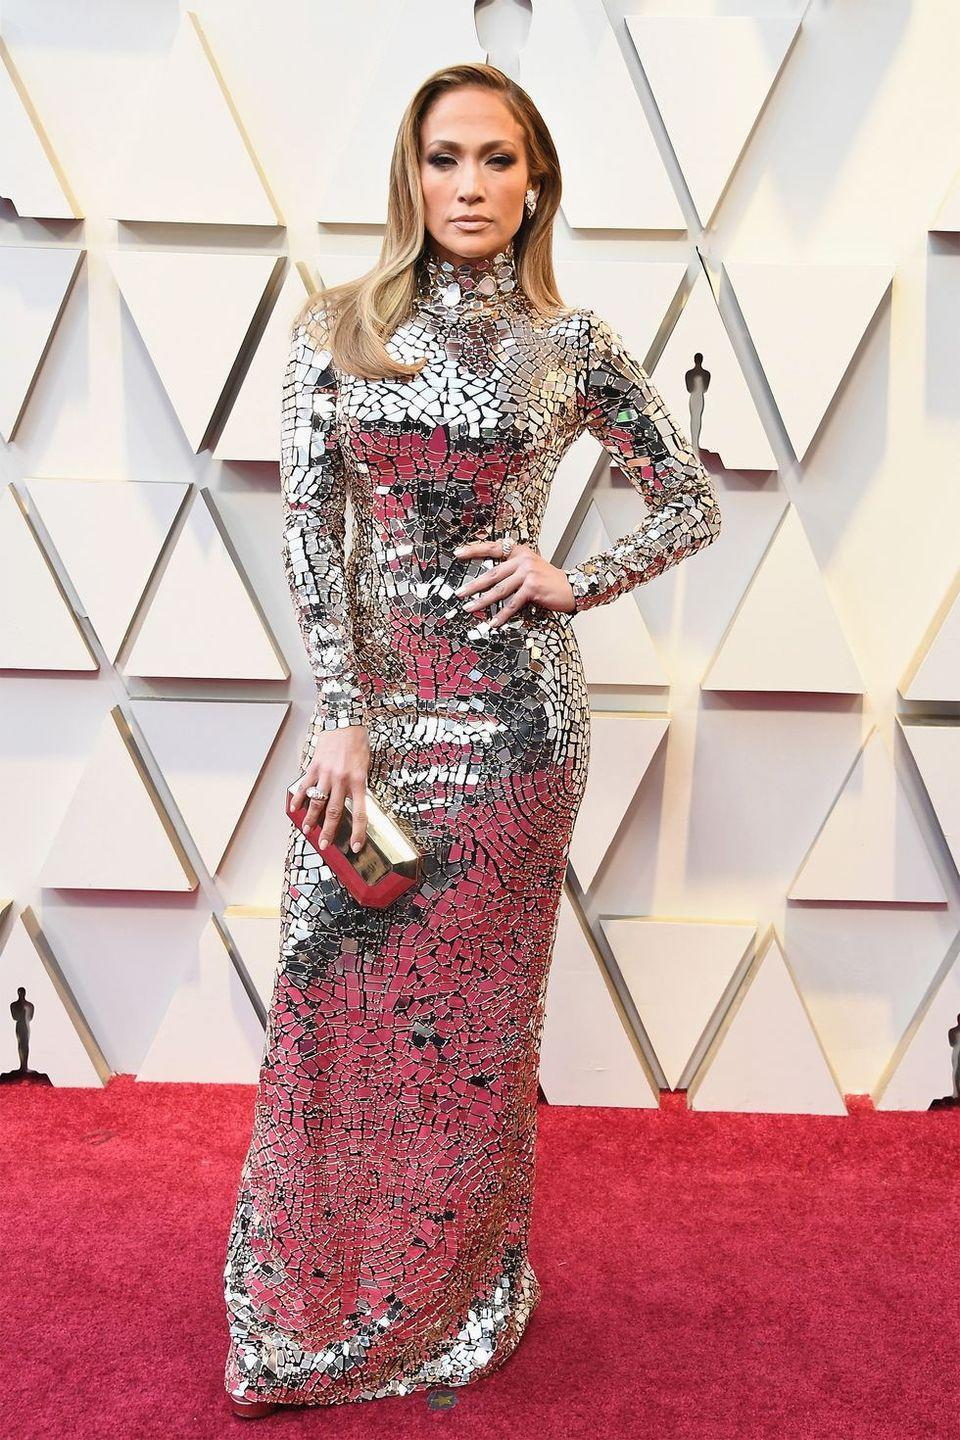 """<p>We bow down to this <a href=""""https://www.harpersbazaar.com/celebrity/red-carpet-dresses/a23119249/jennifer-lopez-oscars-kim-kardashian-met-gala/"""" rel=""""nofollow noopener"""" target=""""_blank"""" data-ylk=""""slk:disco ball of a human"""" class=""""link rapid-noclick-resp"""">disco ball of a human</a>, in a metallic embroidered mirror mosaic long-sleeved gown by Tom Ford. It's all glamour for the most glam night of the year.</p>"""